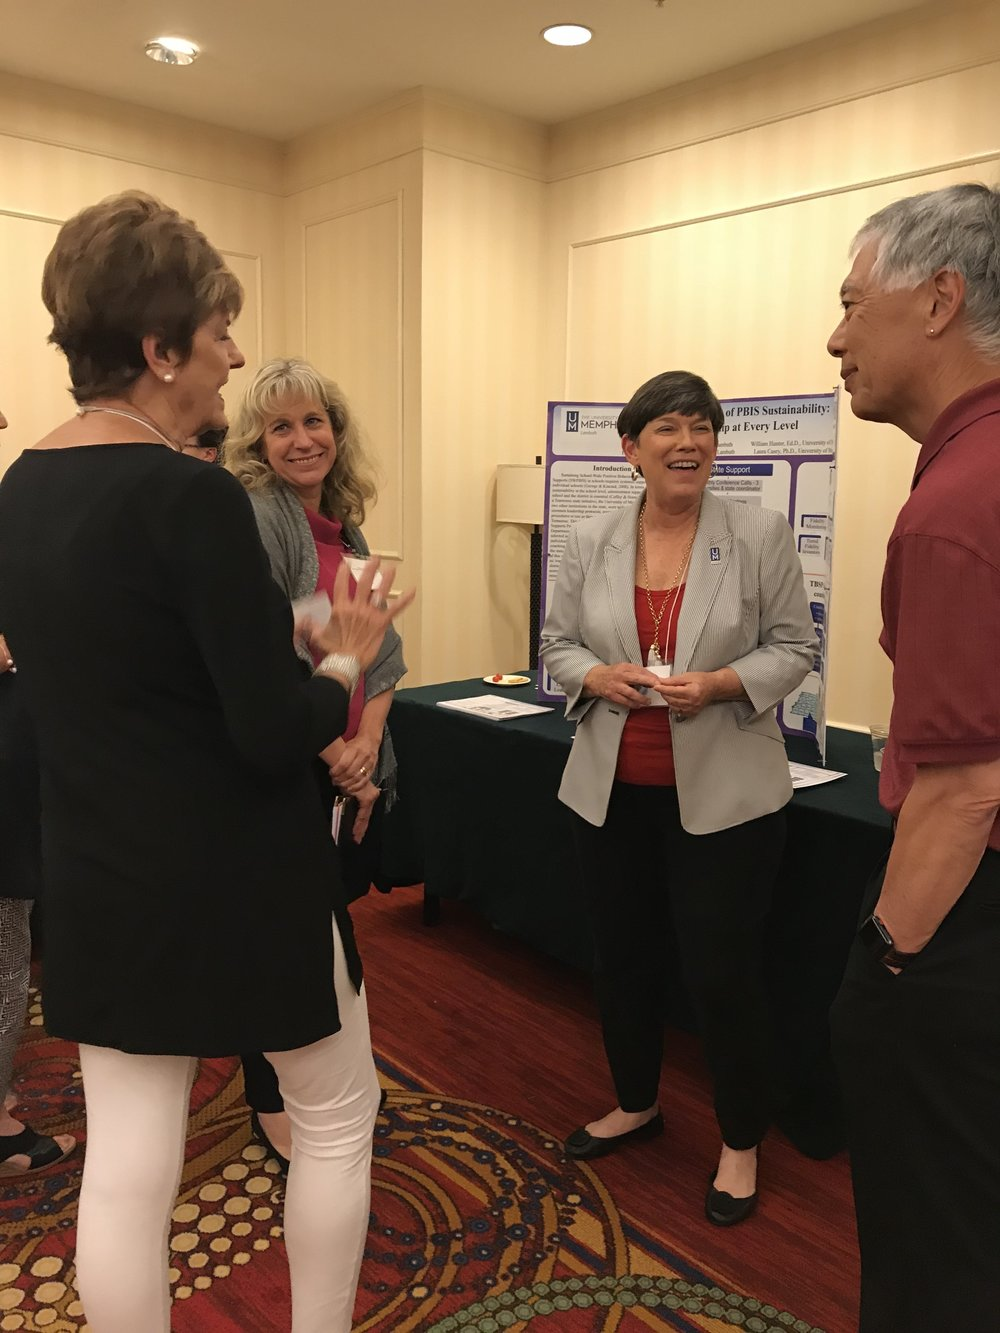 Team members Paula Brownyard and Carolyn Stark discuss our poster with George Sugai, a world renowned leader in PBIS research.